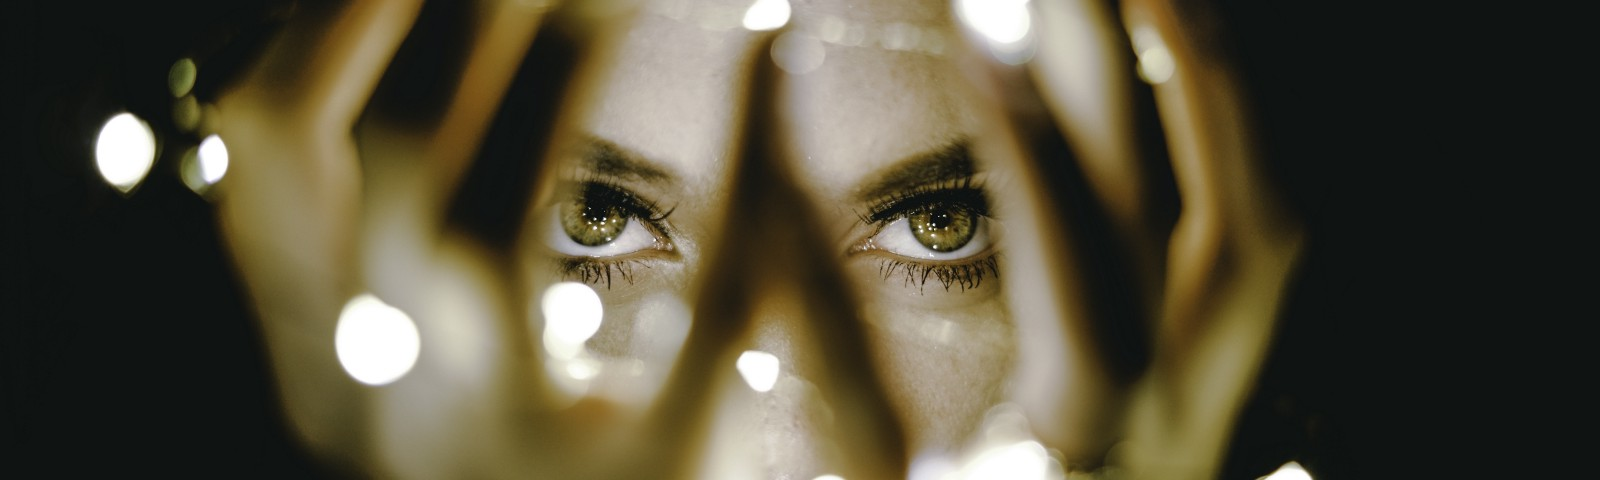 A person's eyes seen through a gap in the fingers, draped with twinkle lights, they hold in front of their face.